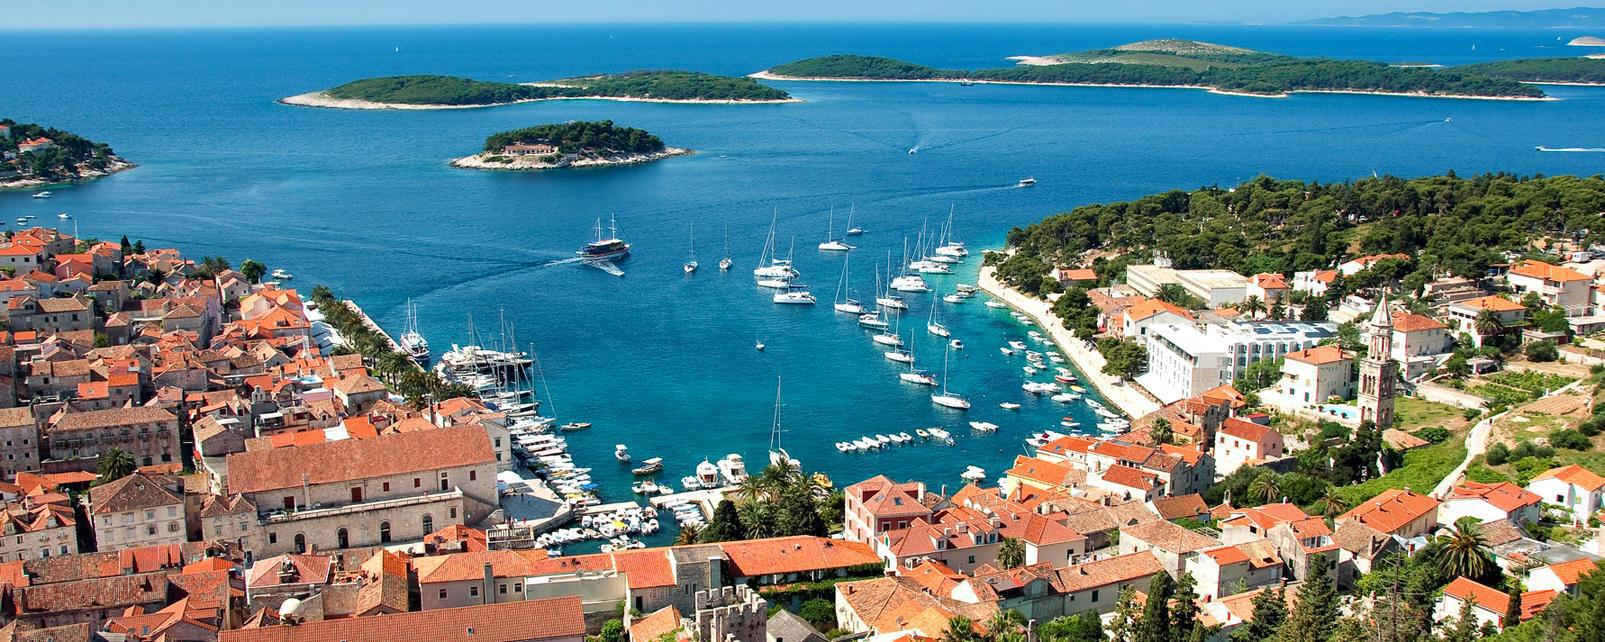 Hvar, Croatia - Monterrasol private tours to Hvar, Croatia. Travel agency offers custom private car tours to see Hvar in Croatia. Order custom private tour to Hvar with departure date on request.